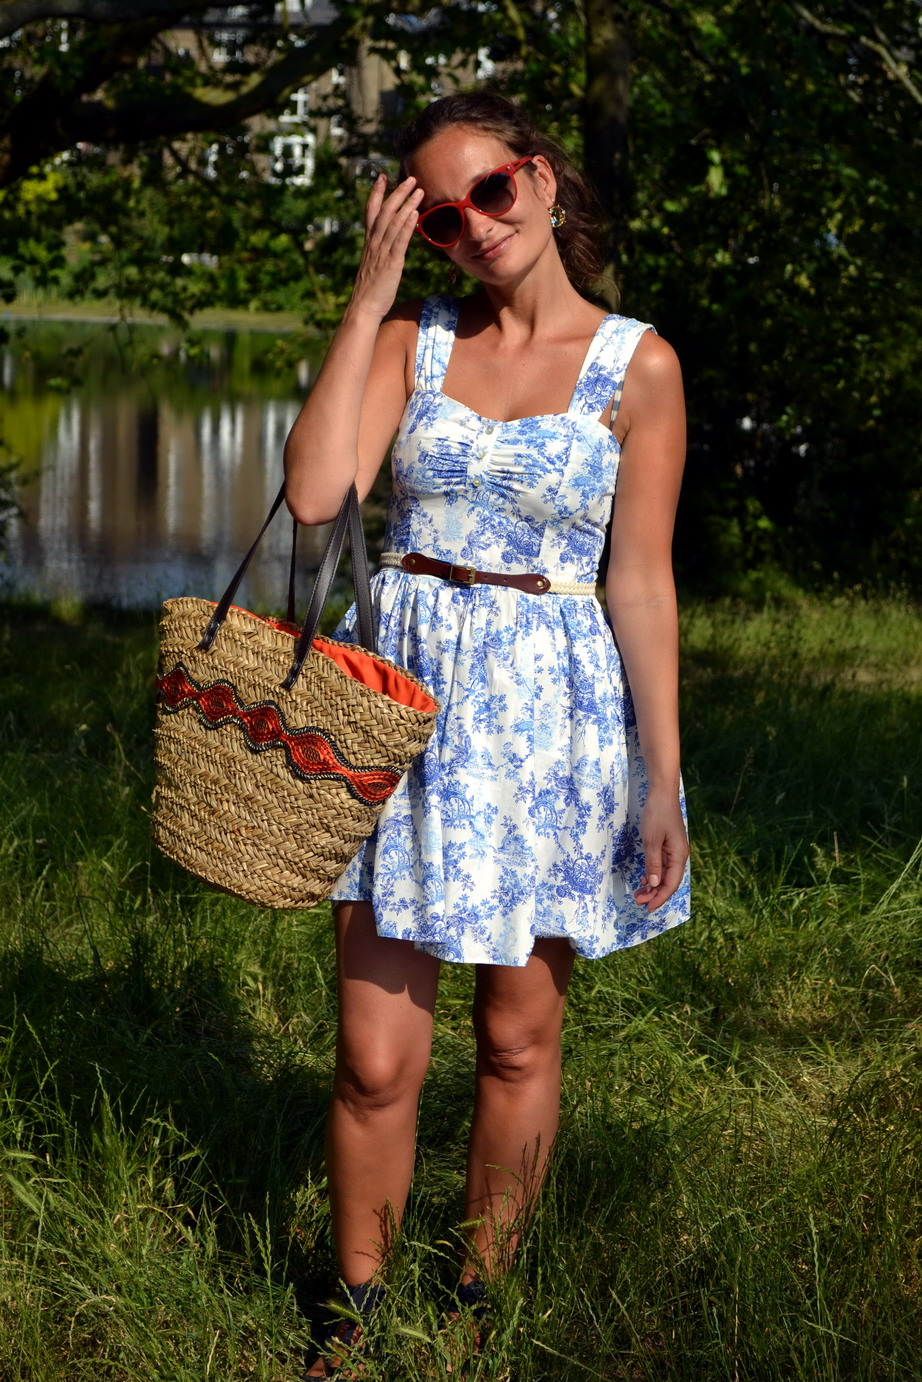 I am wearing a toile de Jouy / wedgewood print sundress by Primark. Straw bag by Le Voyage en Panier.